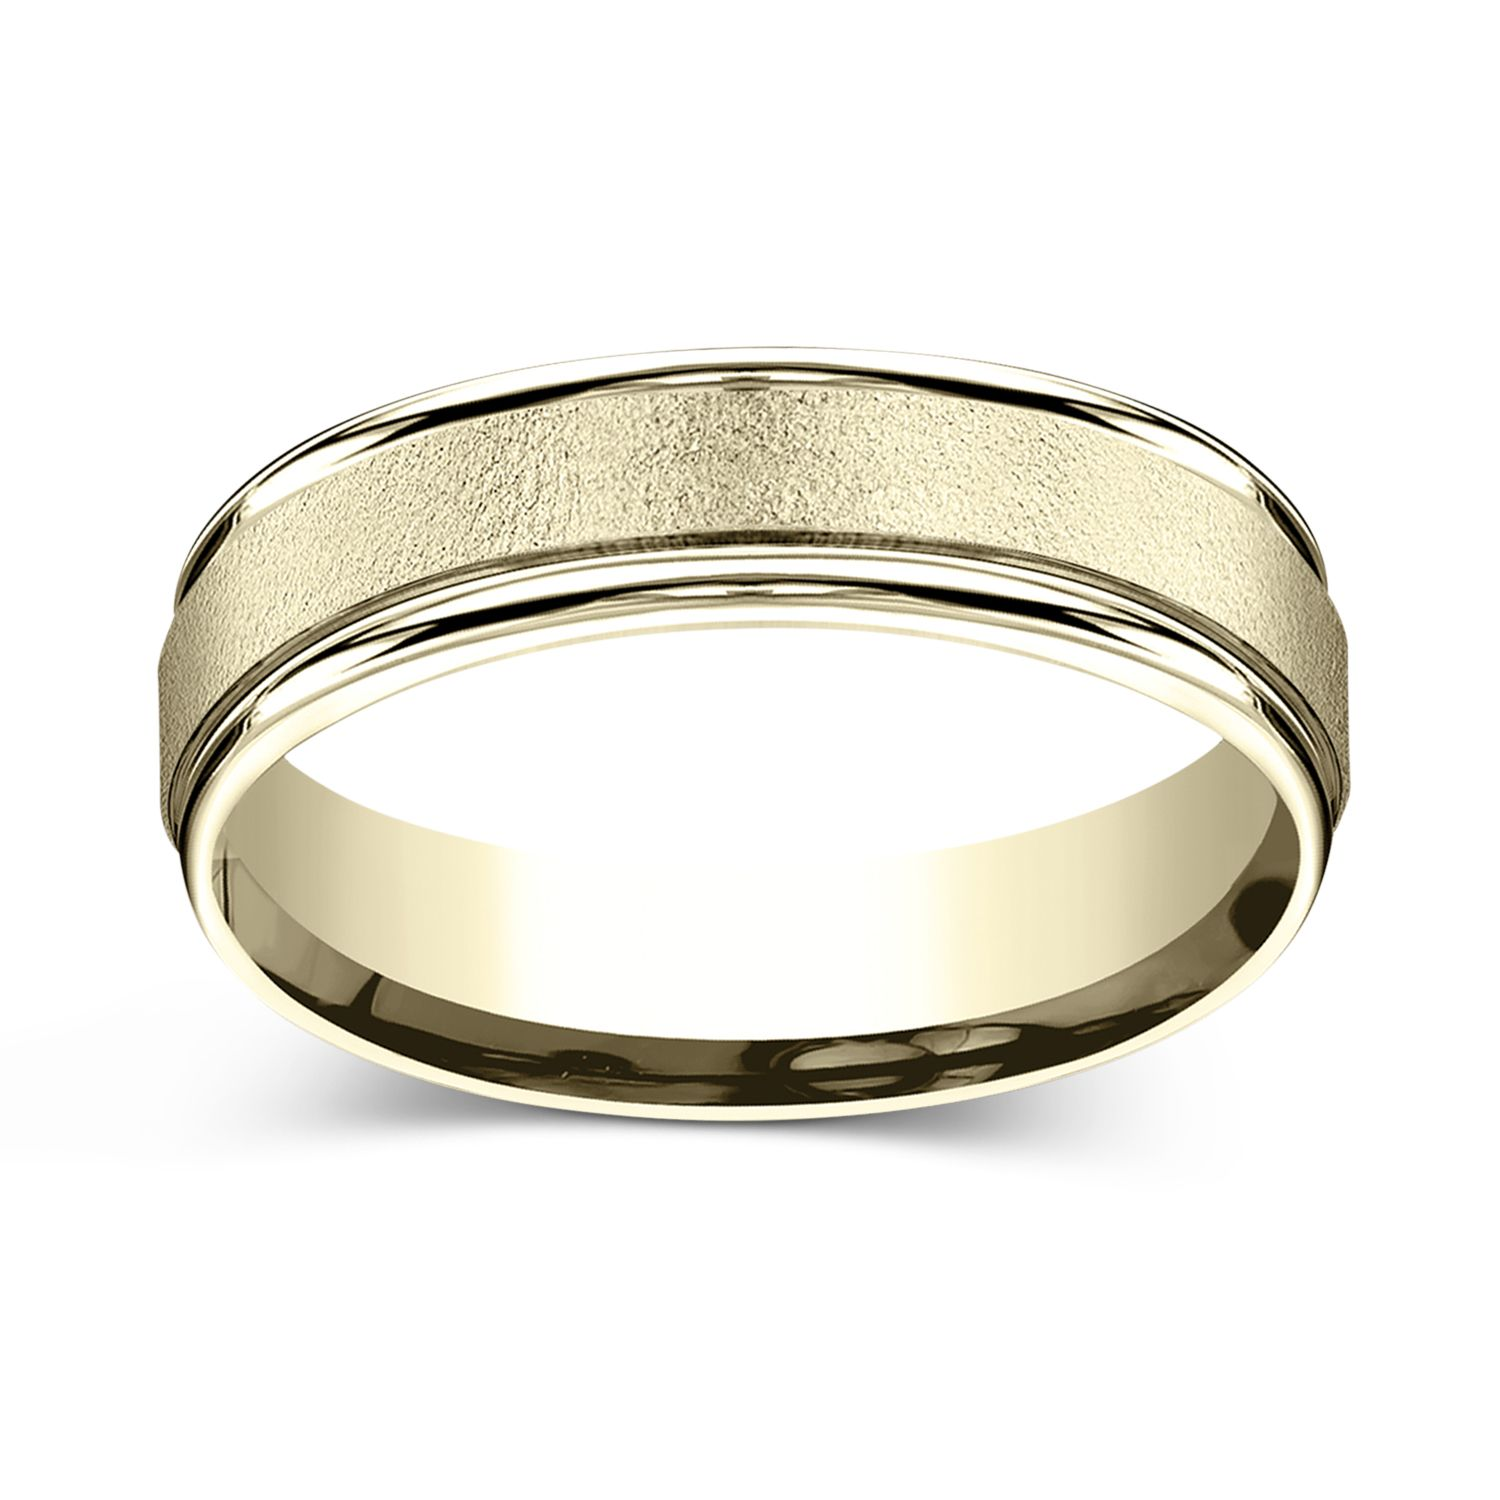 CHARLES & COLVARD: Wired Finish Center With Round Grooved Edges 6.0mm Wedding Band